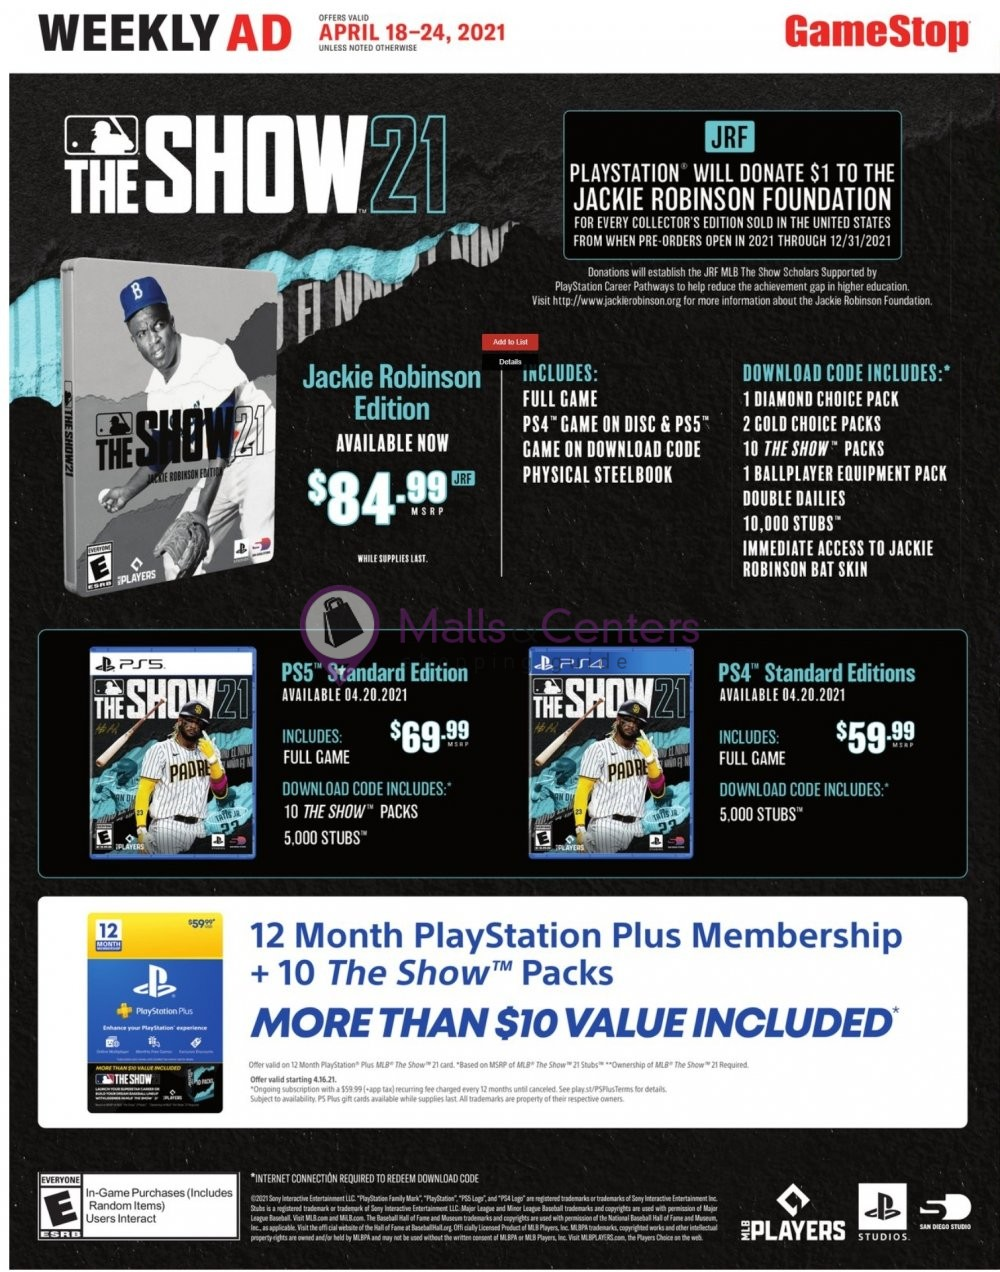 weekly ads GameStop - page 1 - mallscenters.com